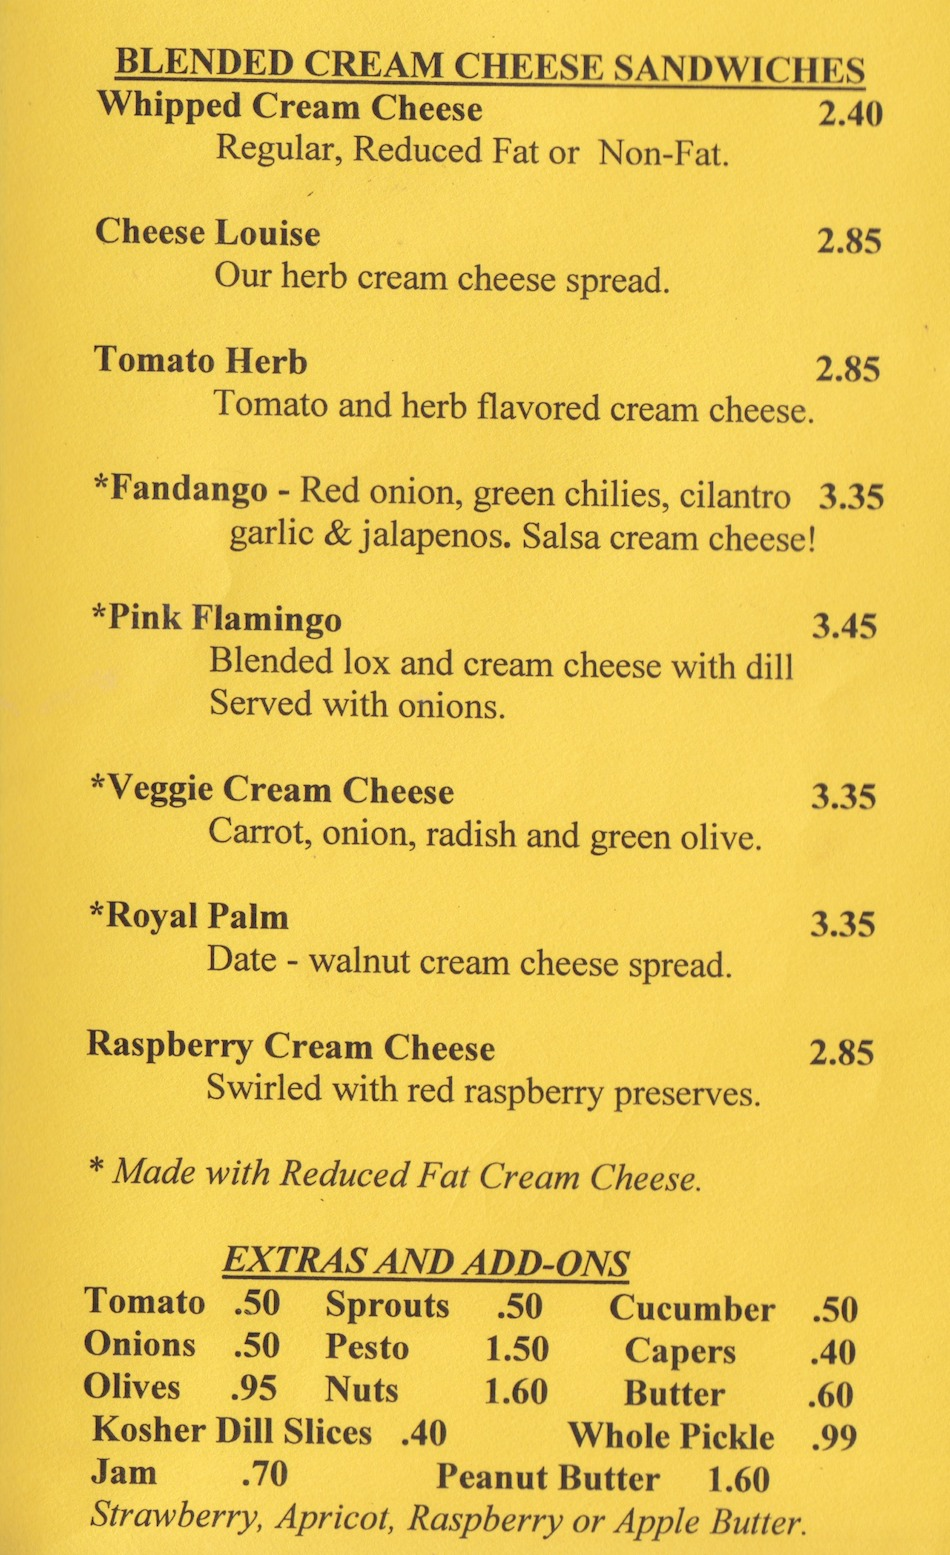 Bagelry Menu - Blended Cream Cheese Sandwiches